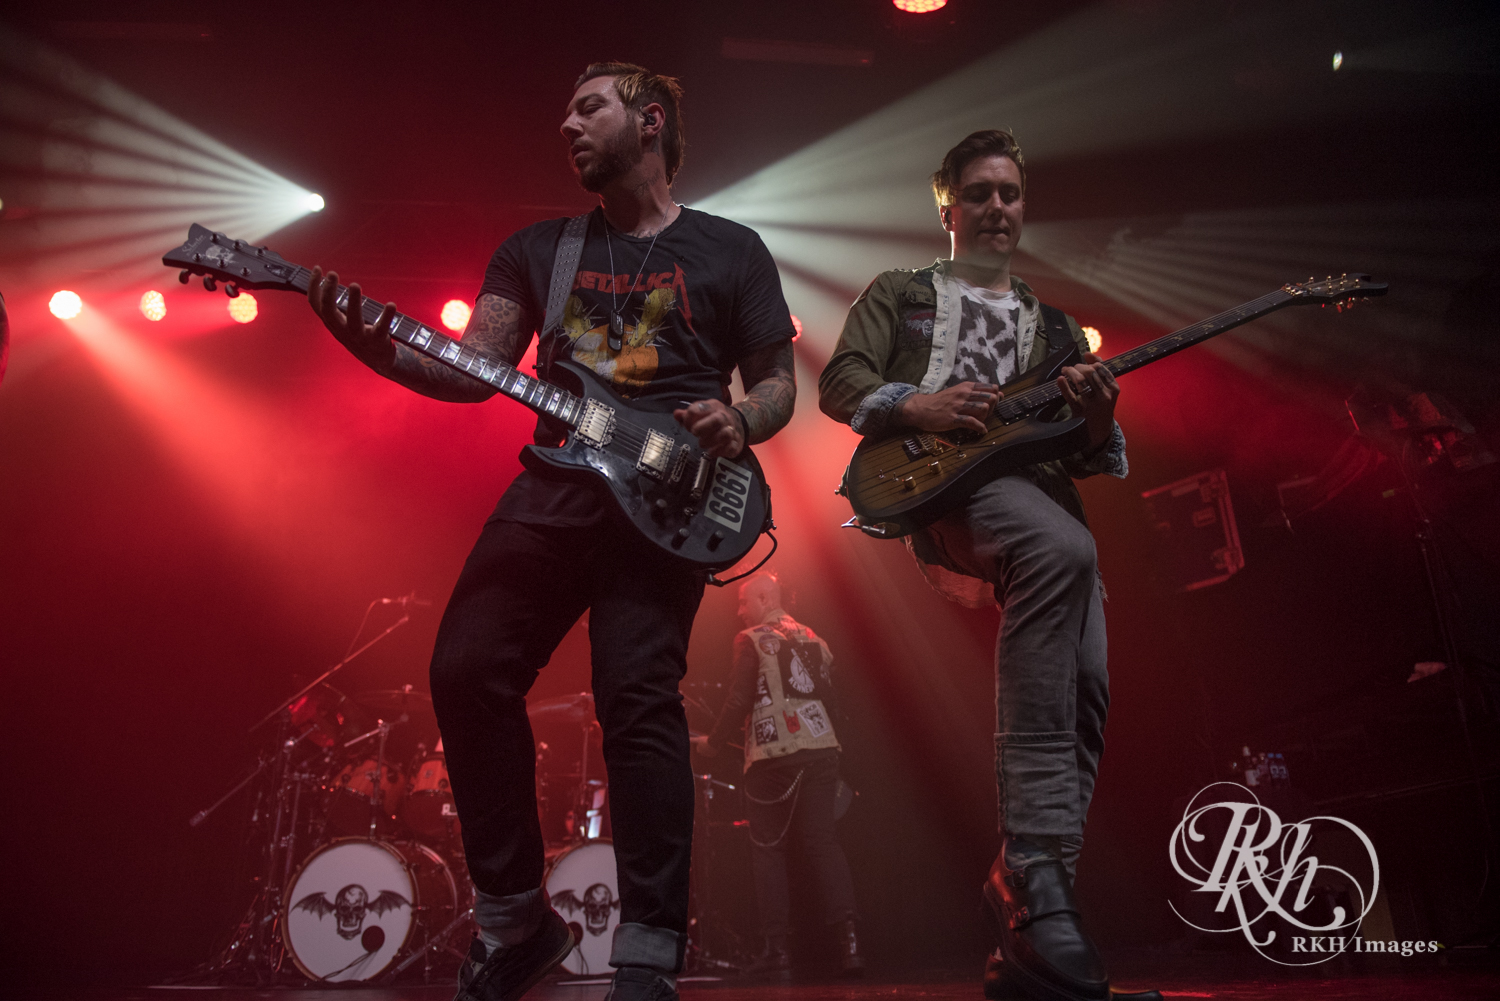 a7x rkh images (39 of 52).jpg